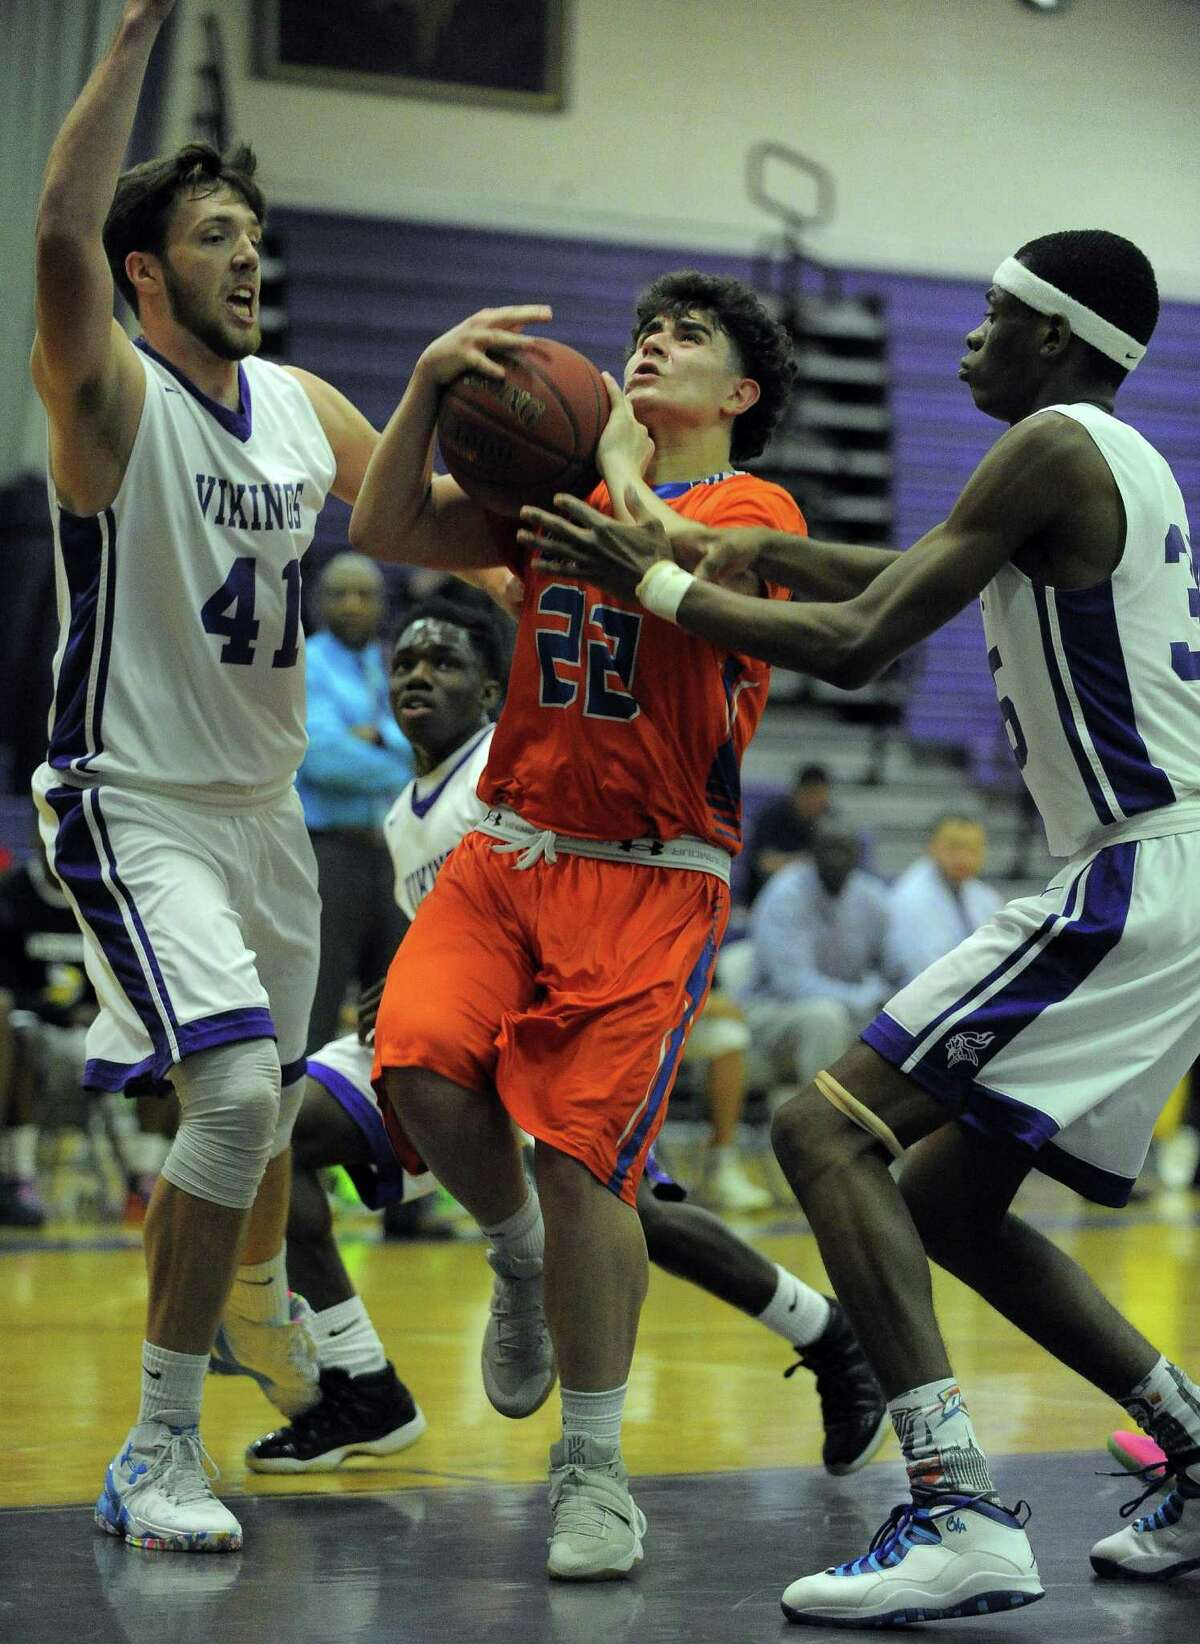 Danbury Cameron Snow drives between Westhill Hunter Semmel and J'ani Graham in a FCIAC boys basketball game at the Westhill High School's J. Walter Kennedy Athletic Complex in Stamford on Jan. 13, 2017.